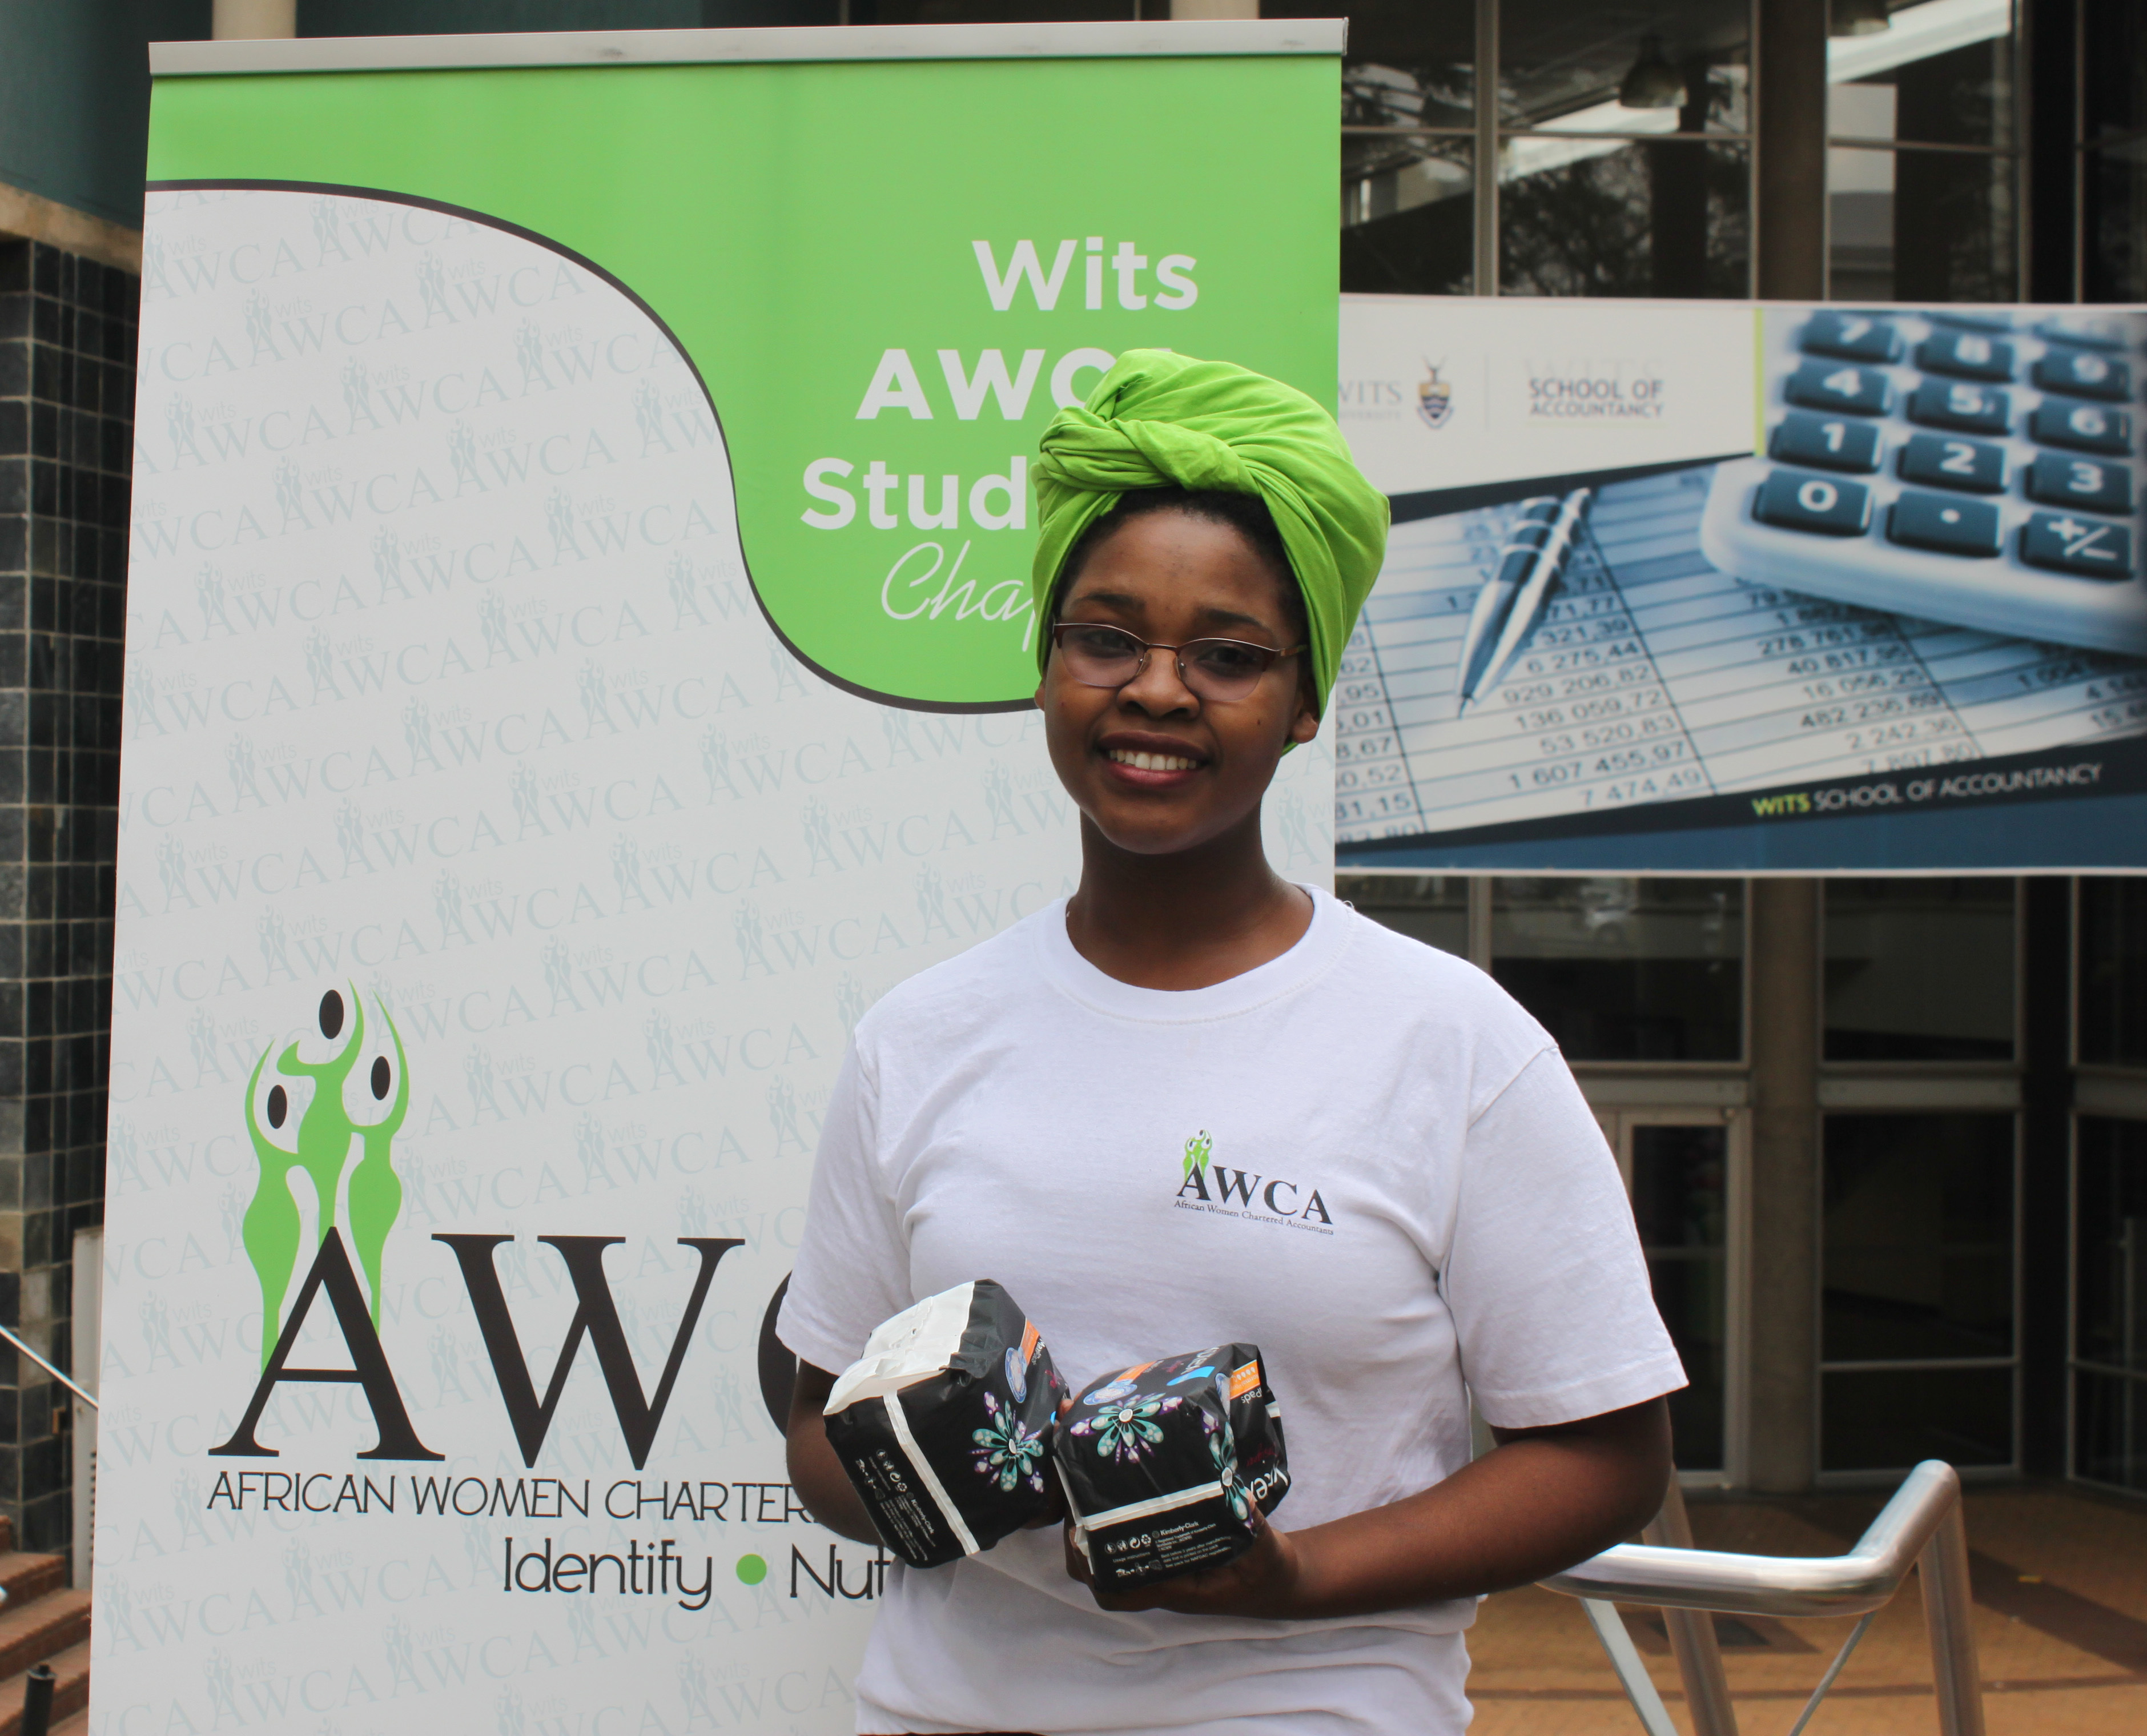 Wits accounting society raises funds for underprivileged girls